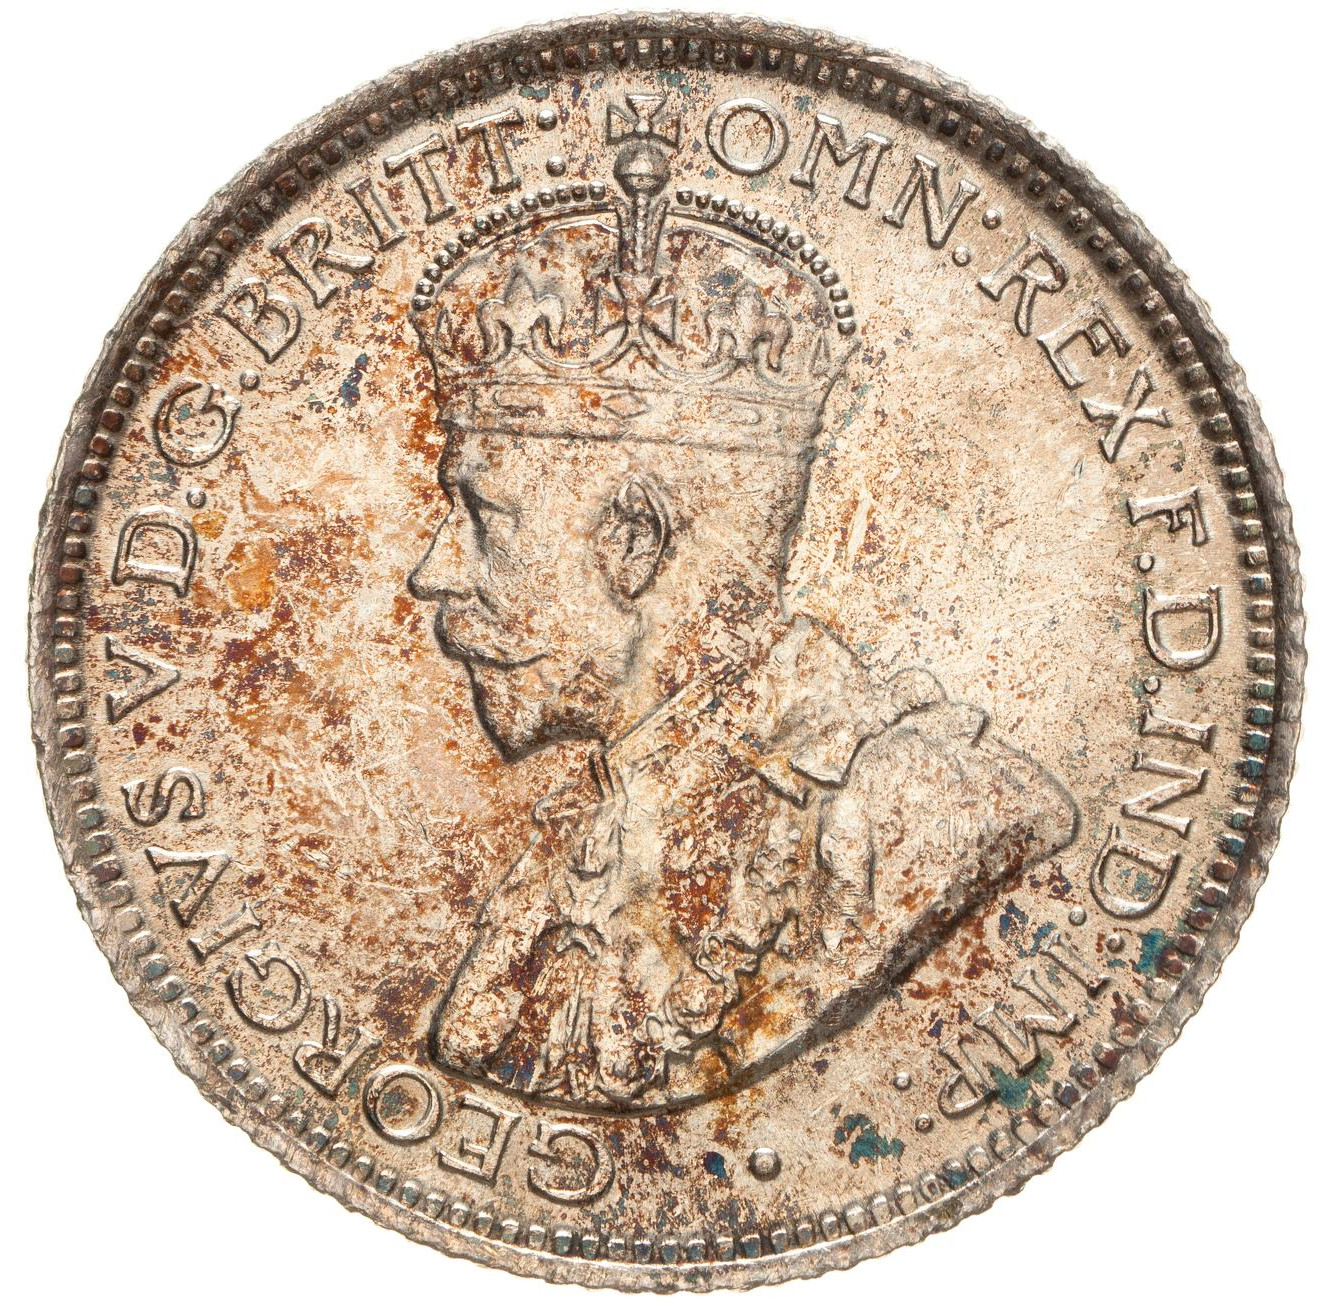 Sixpence: Photo Coin - 6 Pence, British West Africa, 1913